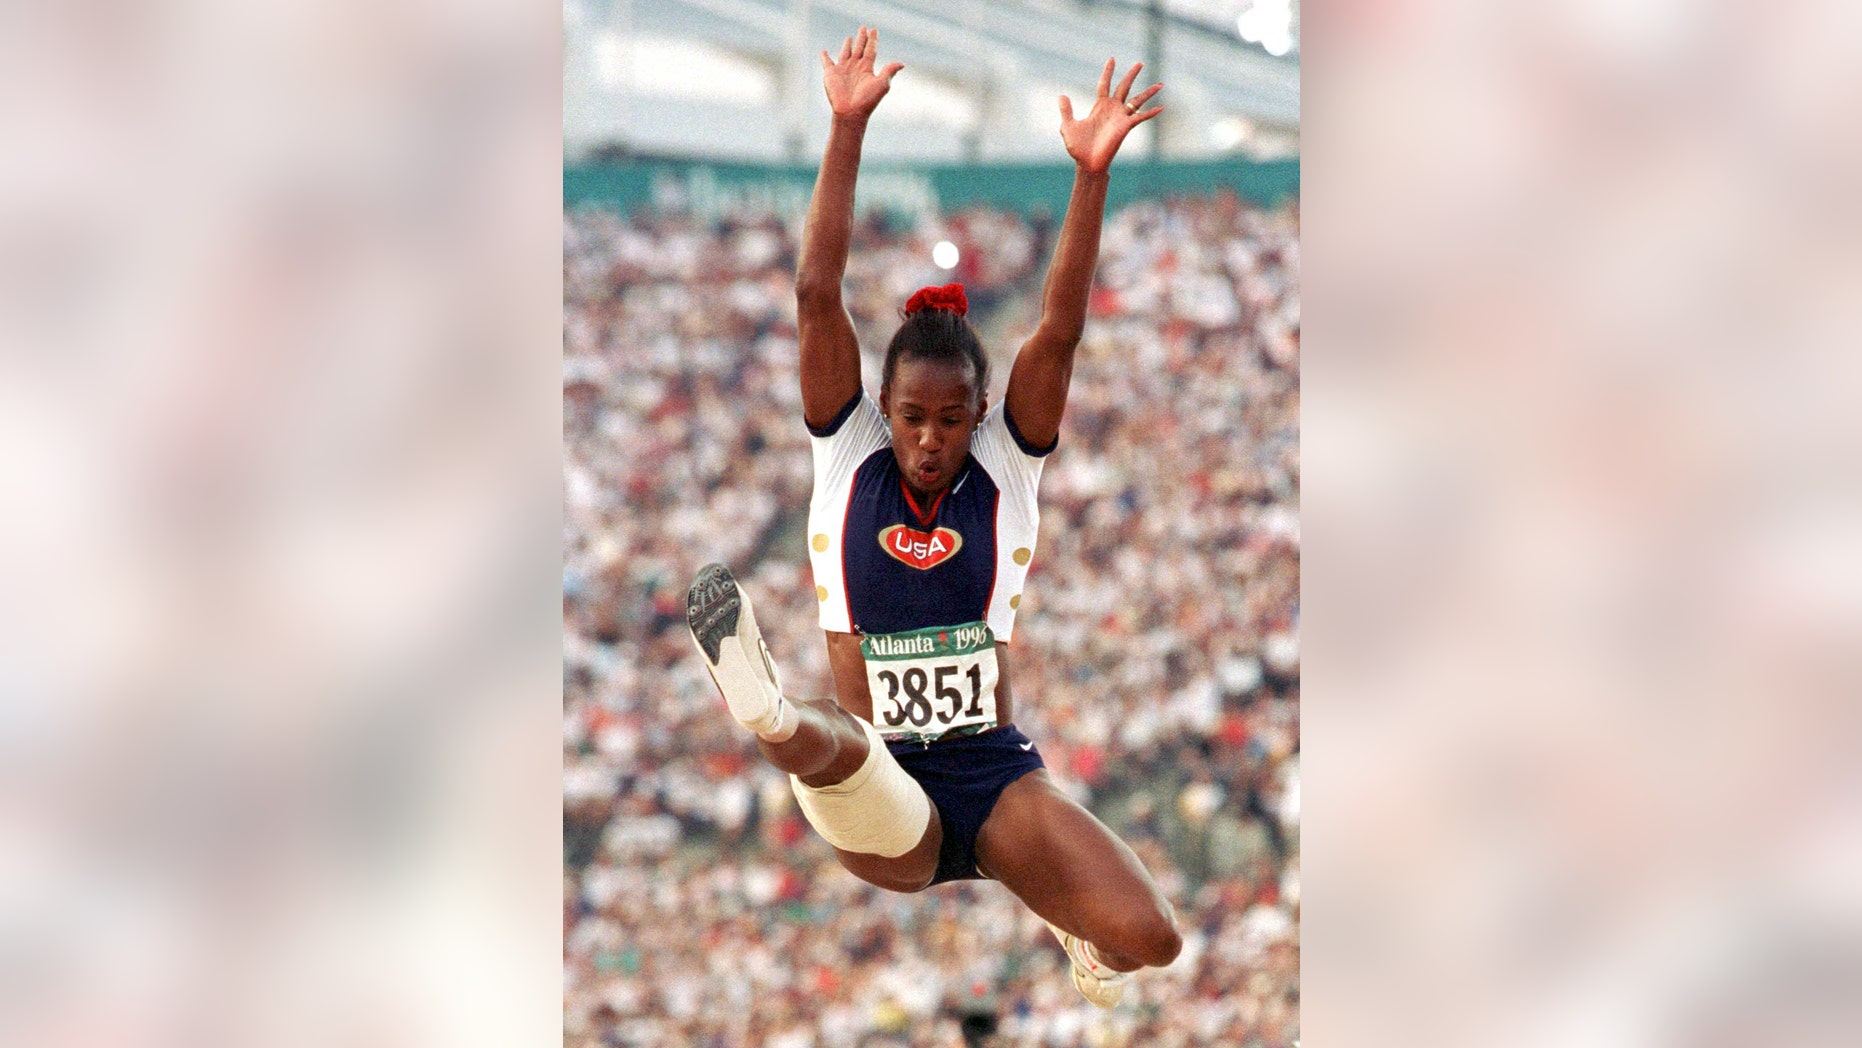 Jackie Joyner-Kersee of the United States competes in the finals of the women's long jump competition Aug. 2, 1996 at the Olympic stadium in Atlanta (Reuters).